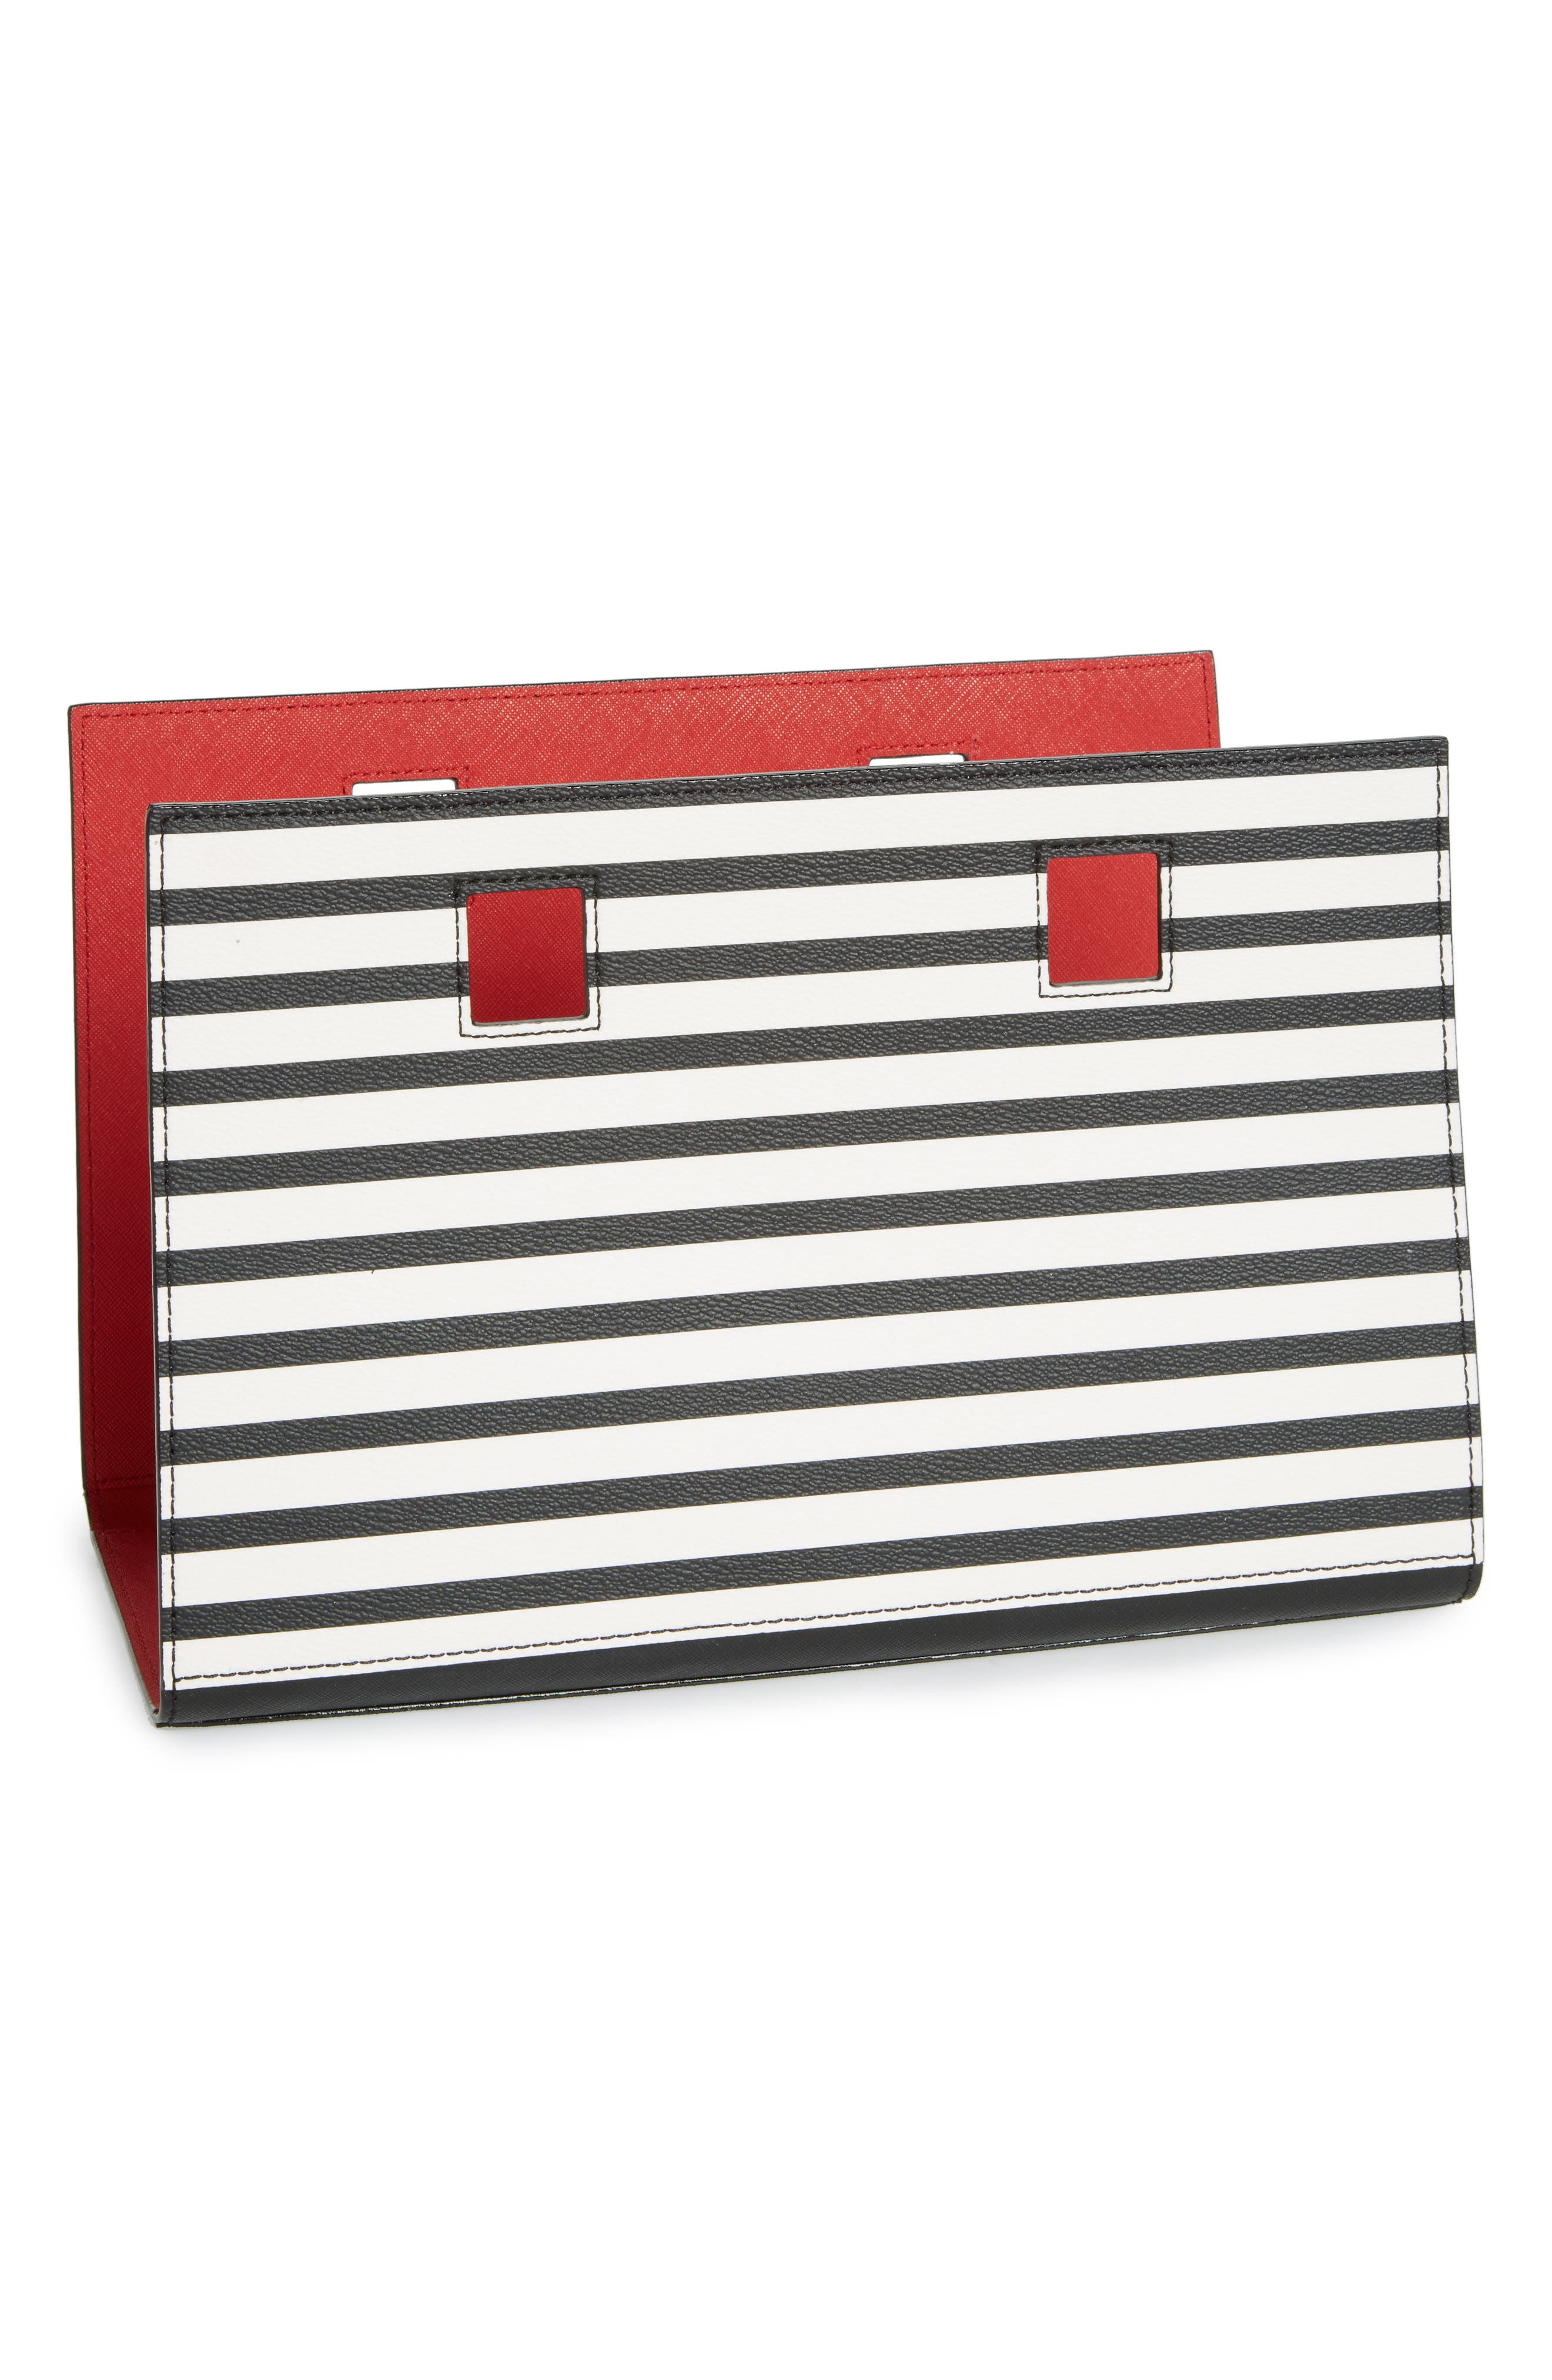 kate spade new york make it mine reversible stripe/solid leather snap-on accent flap